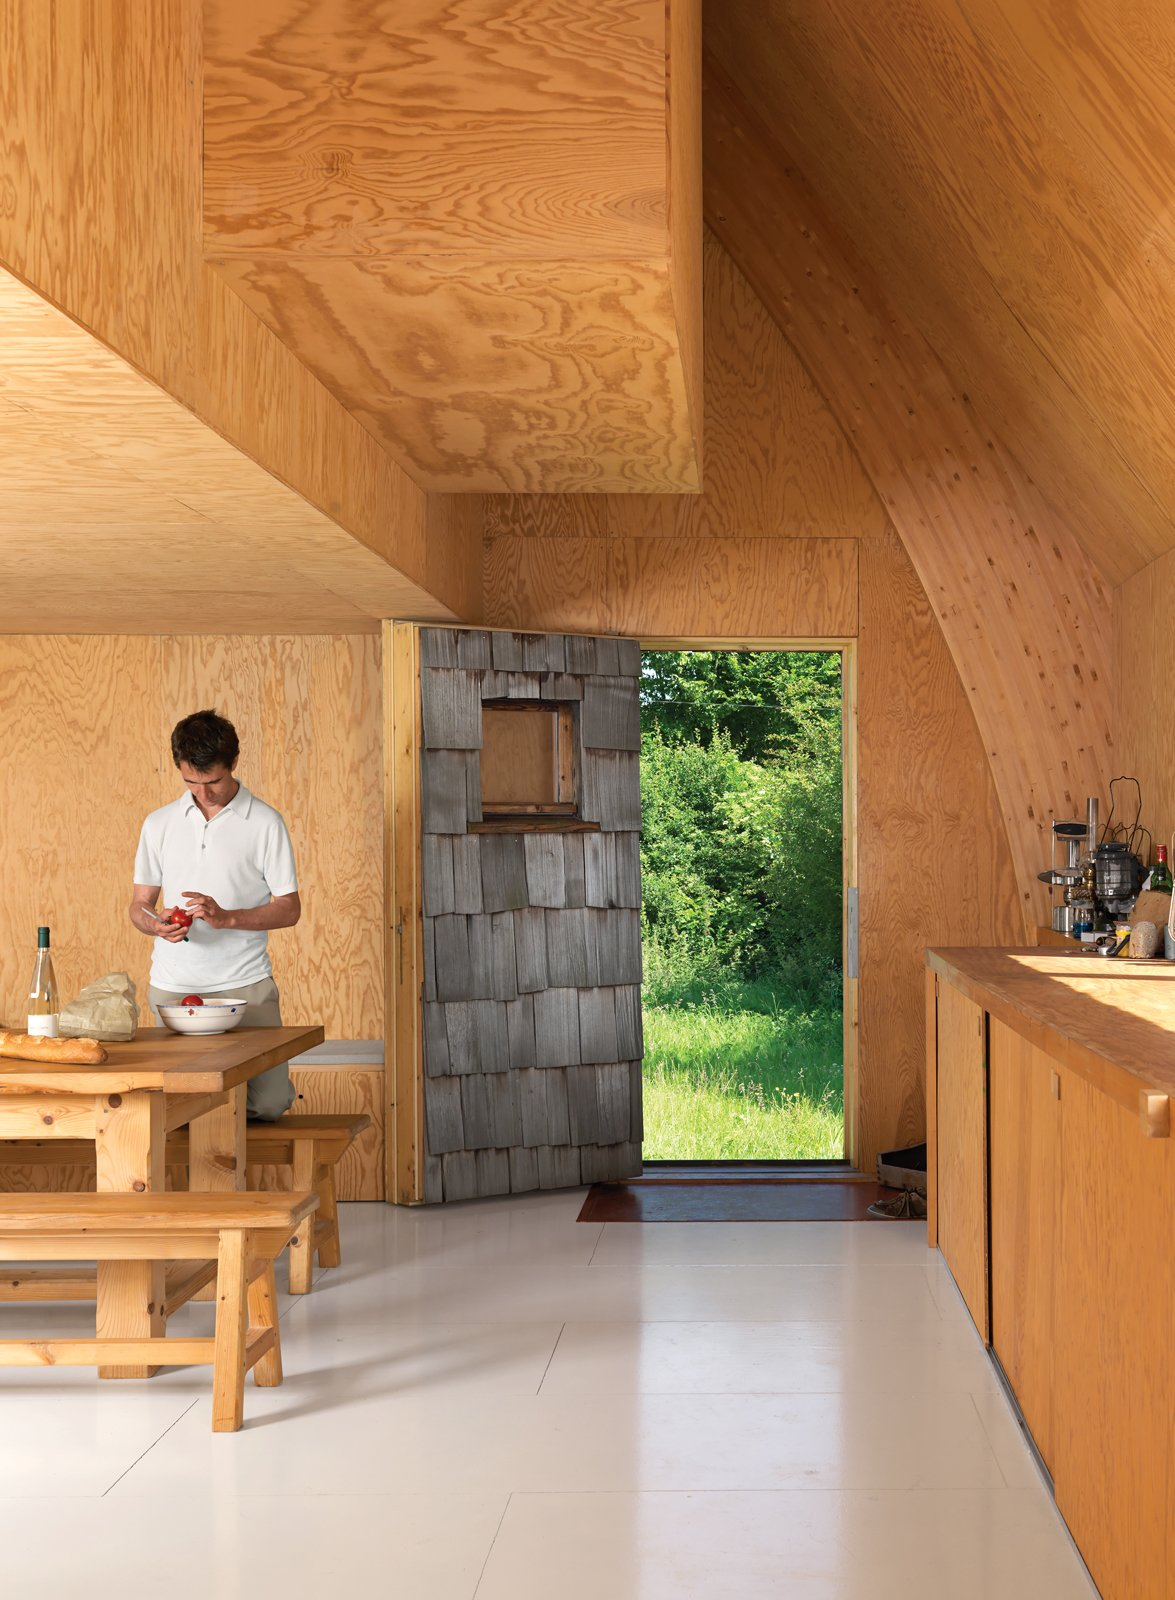 Kitchen and Wood Cabinet Built in 18 months on a budget of $105,000, this charming A-frame saves on costs with an interior lined with exposed plywood.    Photo 9 of 11 in Modern Wooden A-Frame Retreat in France